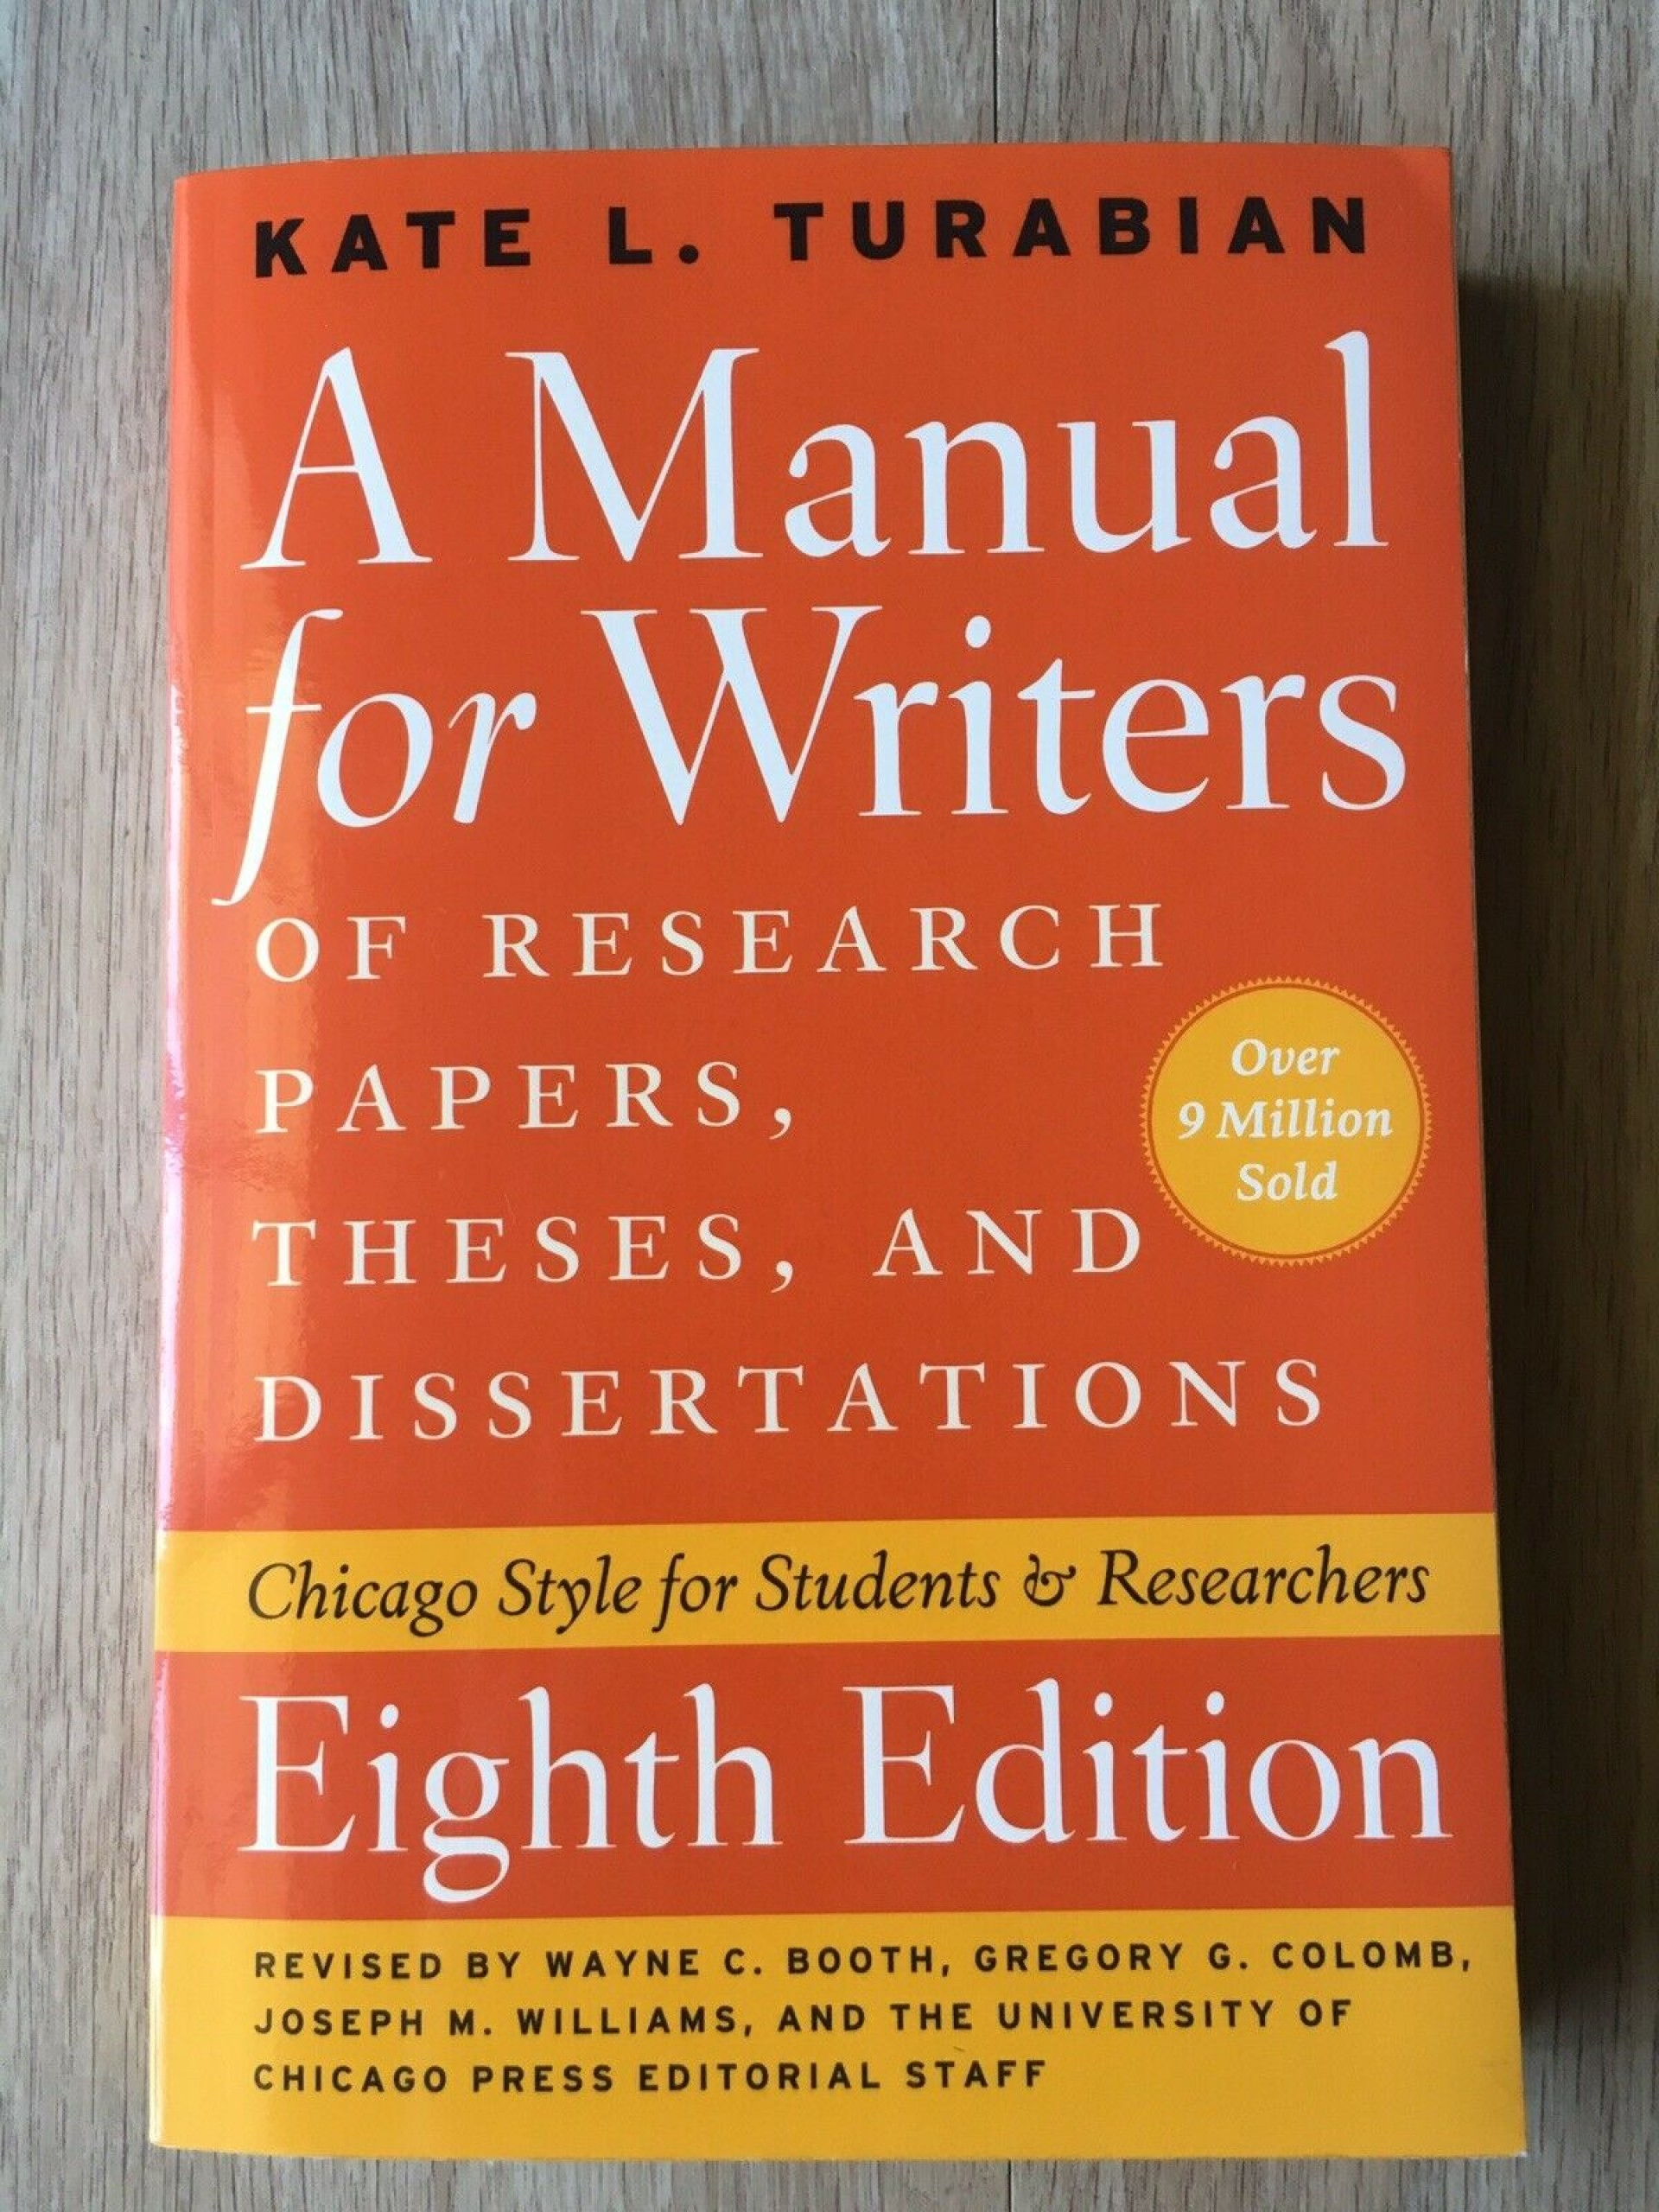 009 Research Paper Manual For Writers Of Papers Theses And Dissertations S Fearsome A Ed 8 1920